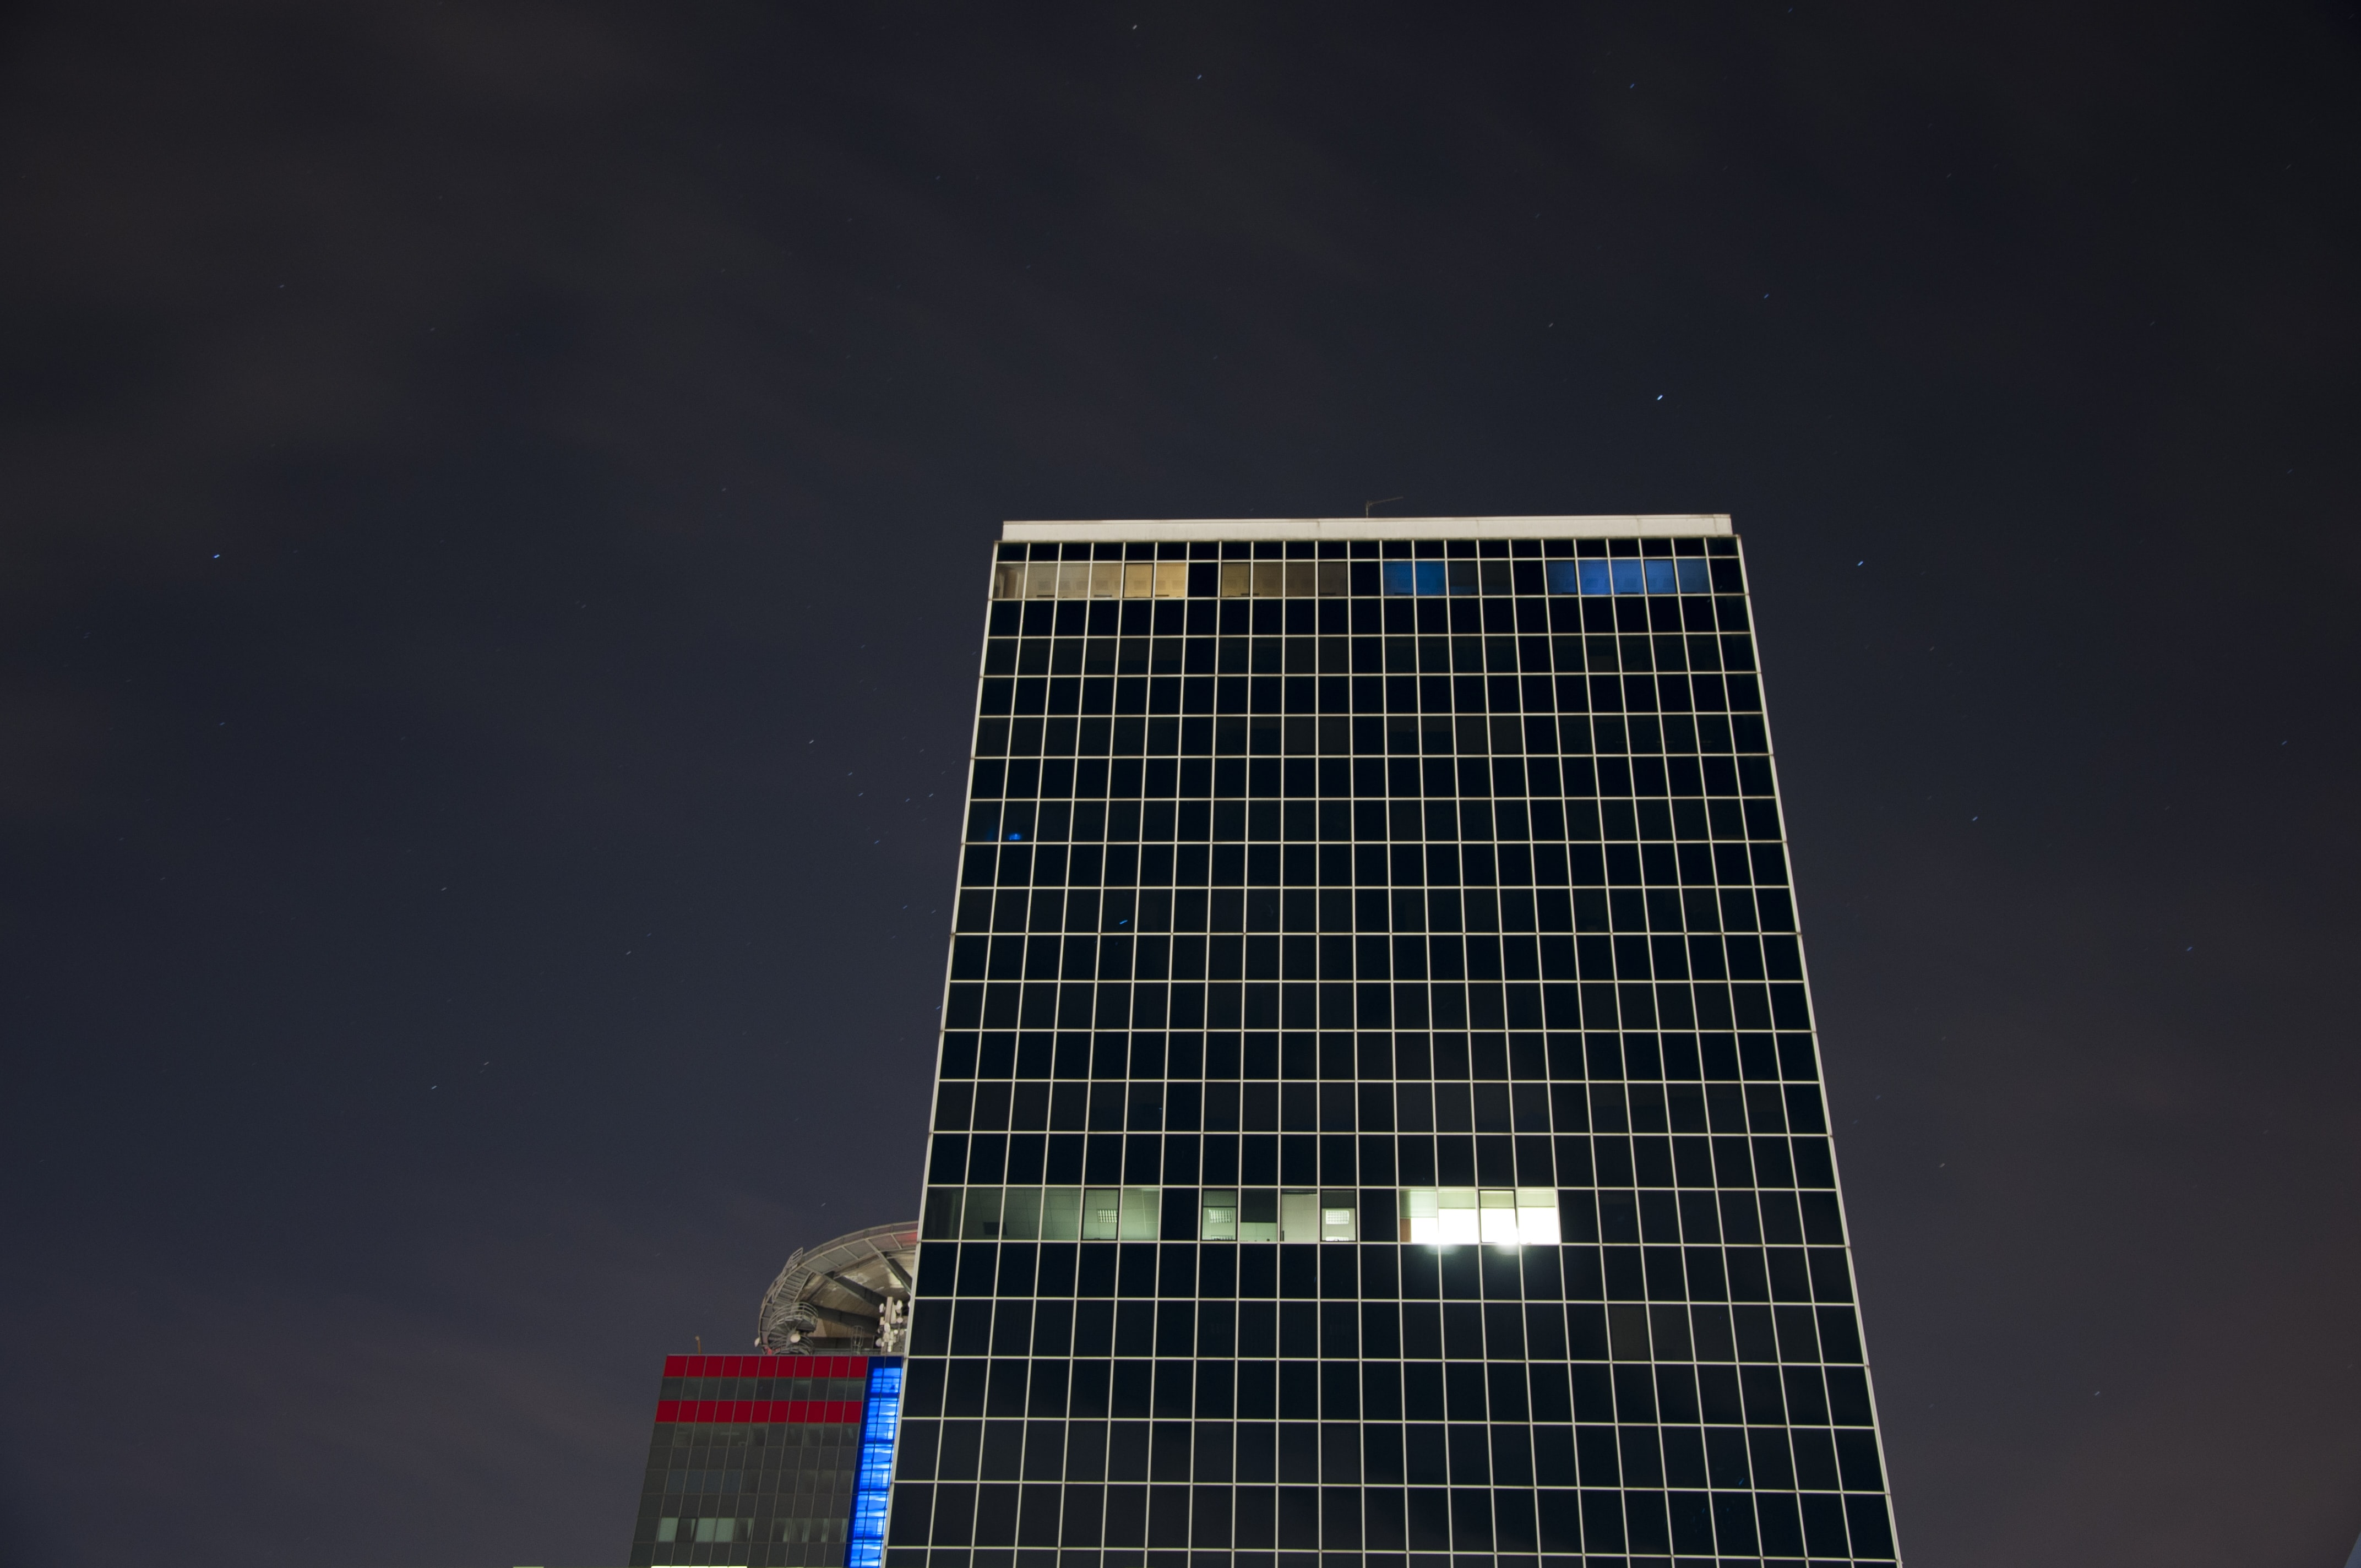 low-angle photo of high-rise building during night time